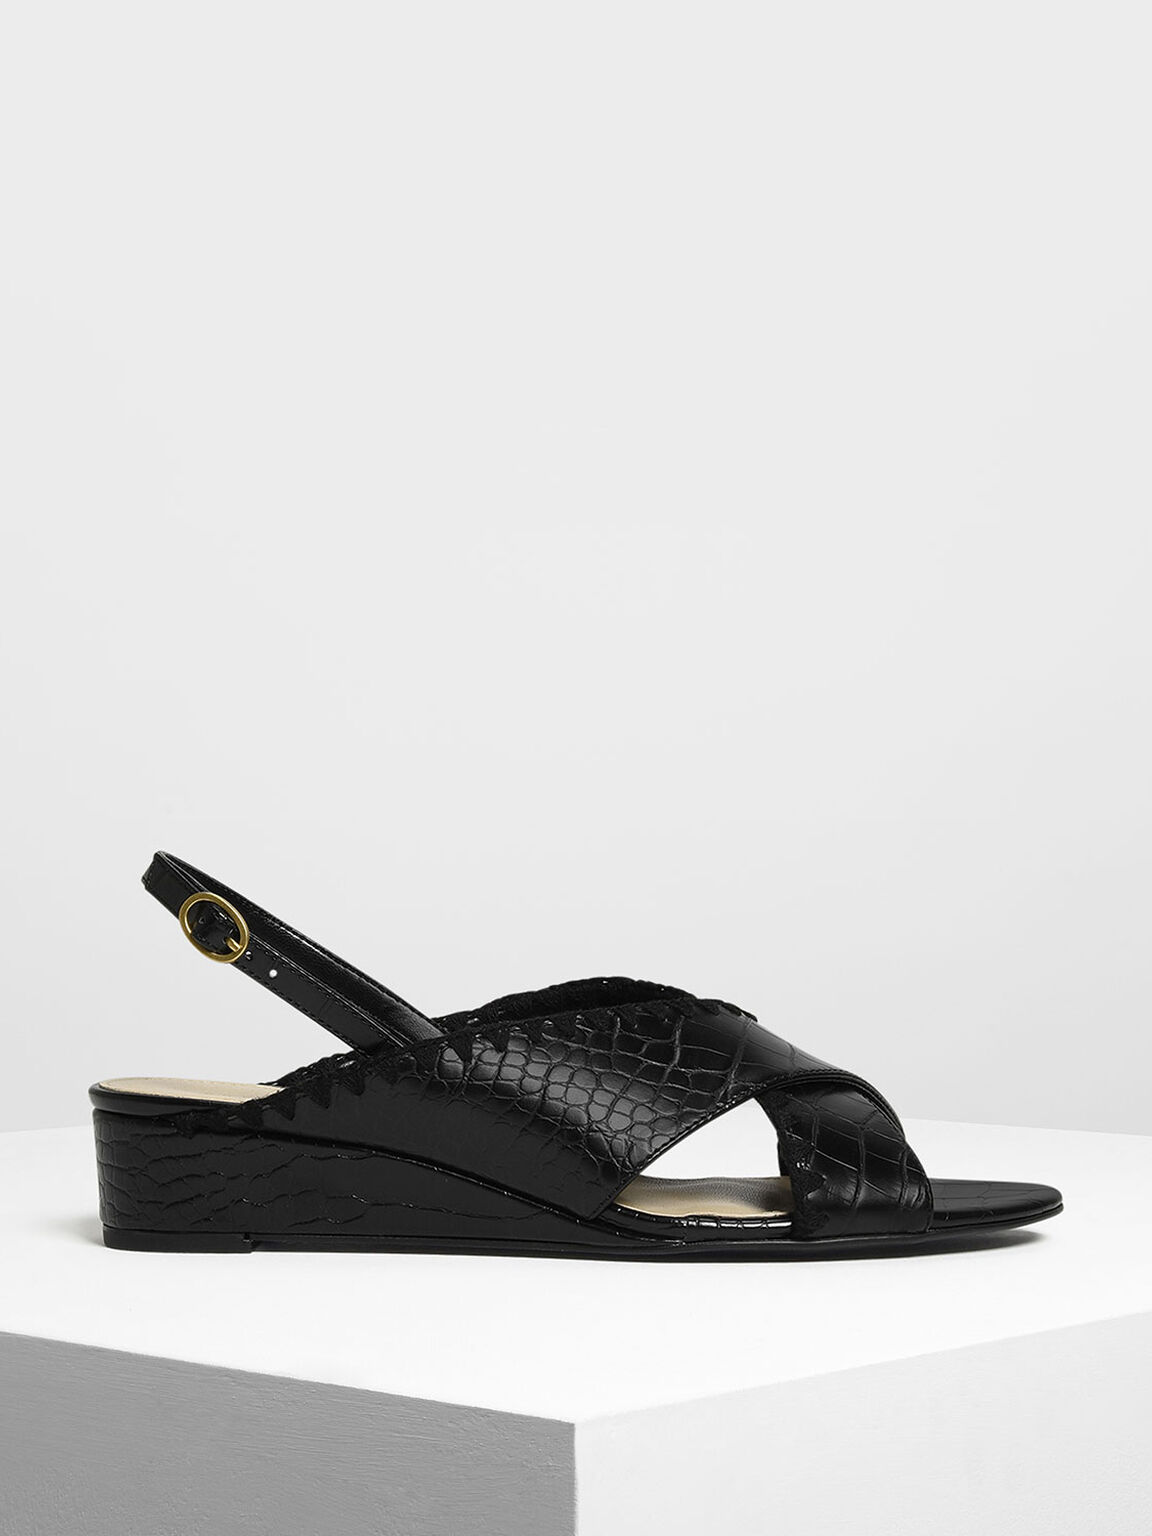 Whipstitch Trim Wedge Sandals, Black, hi-res